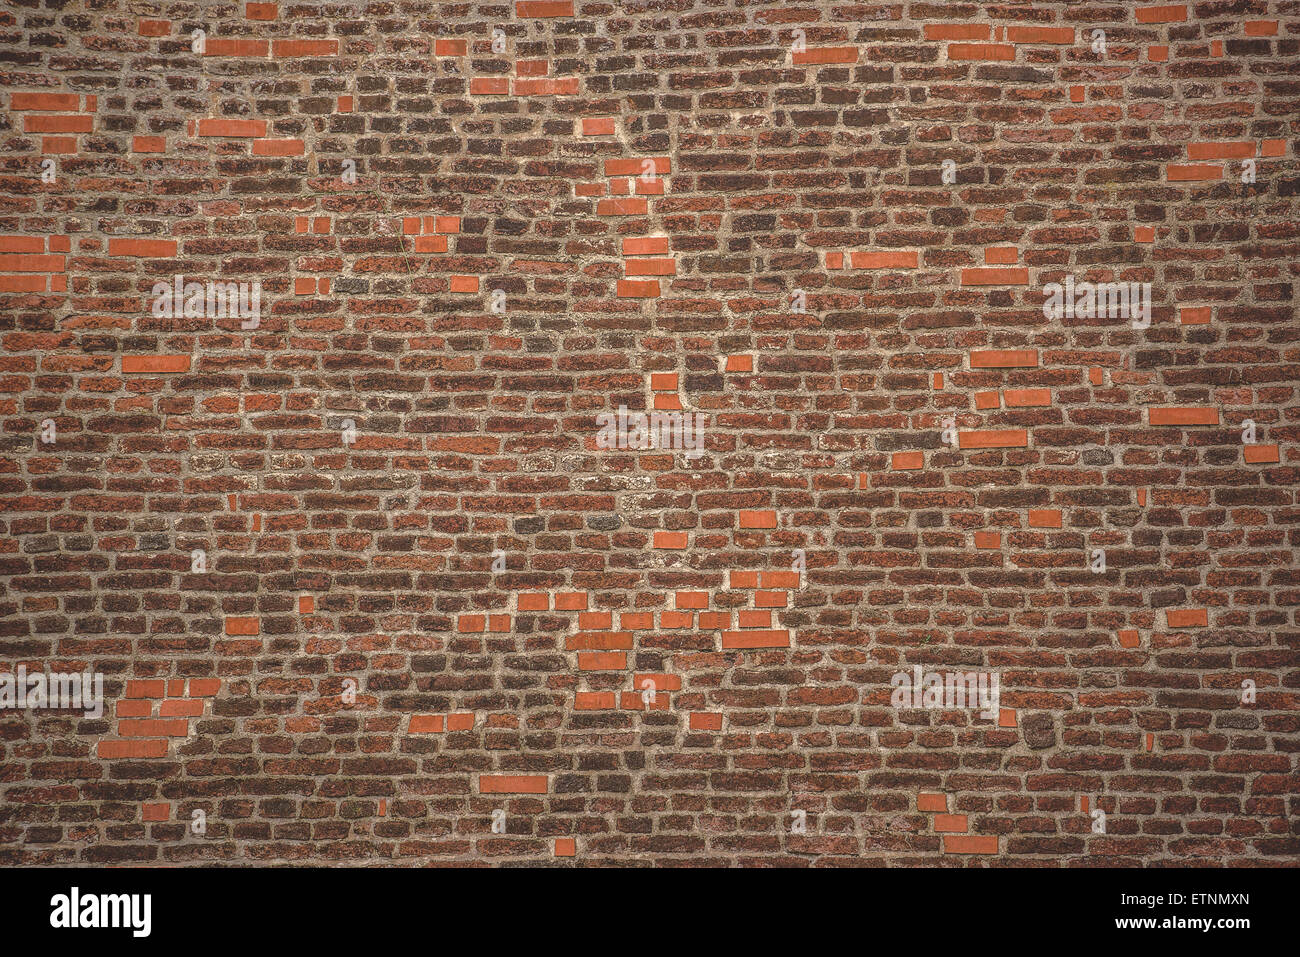 Rustic Brick Wall Texture Pattern As Urban Background Retro Toned Vintage Effect